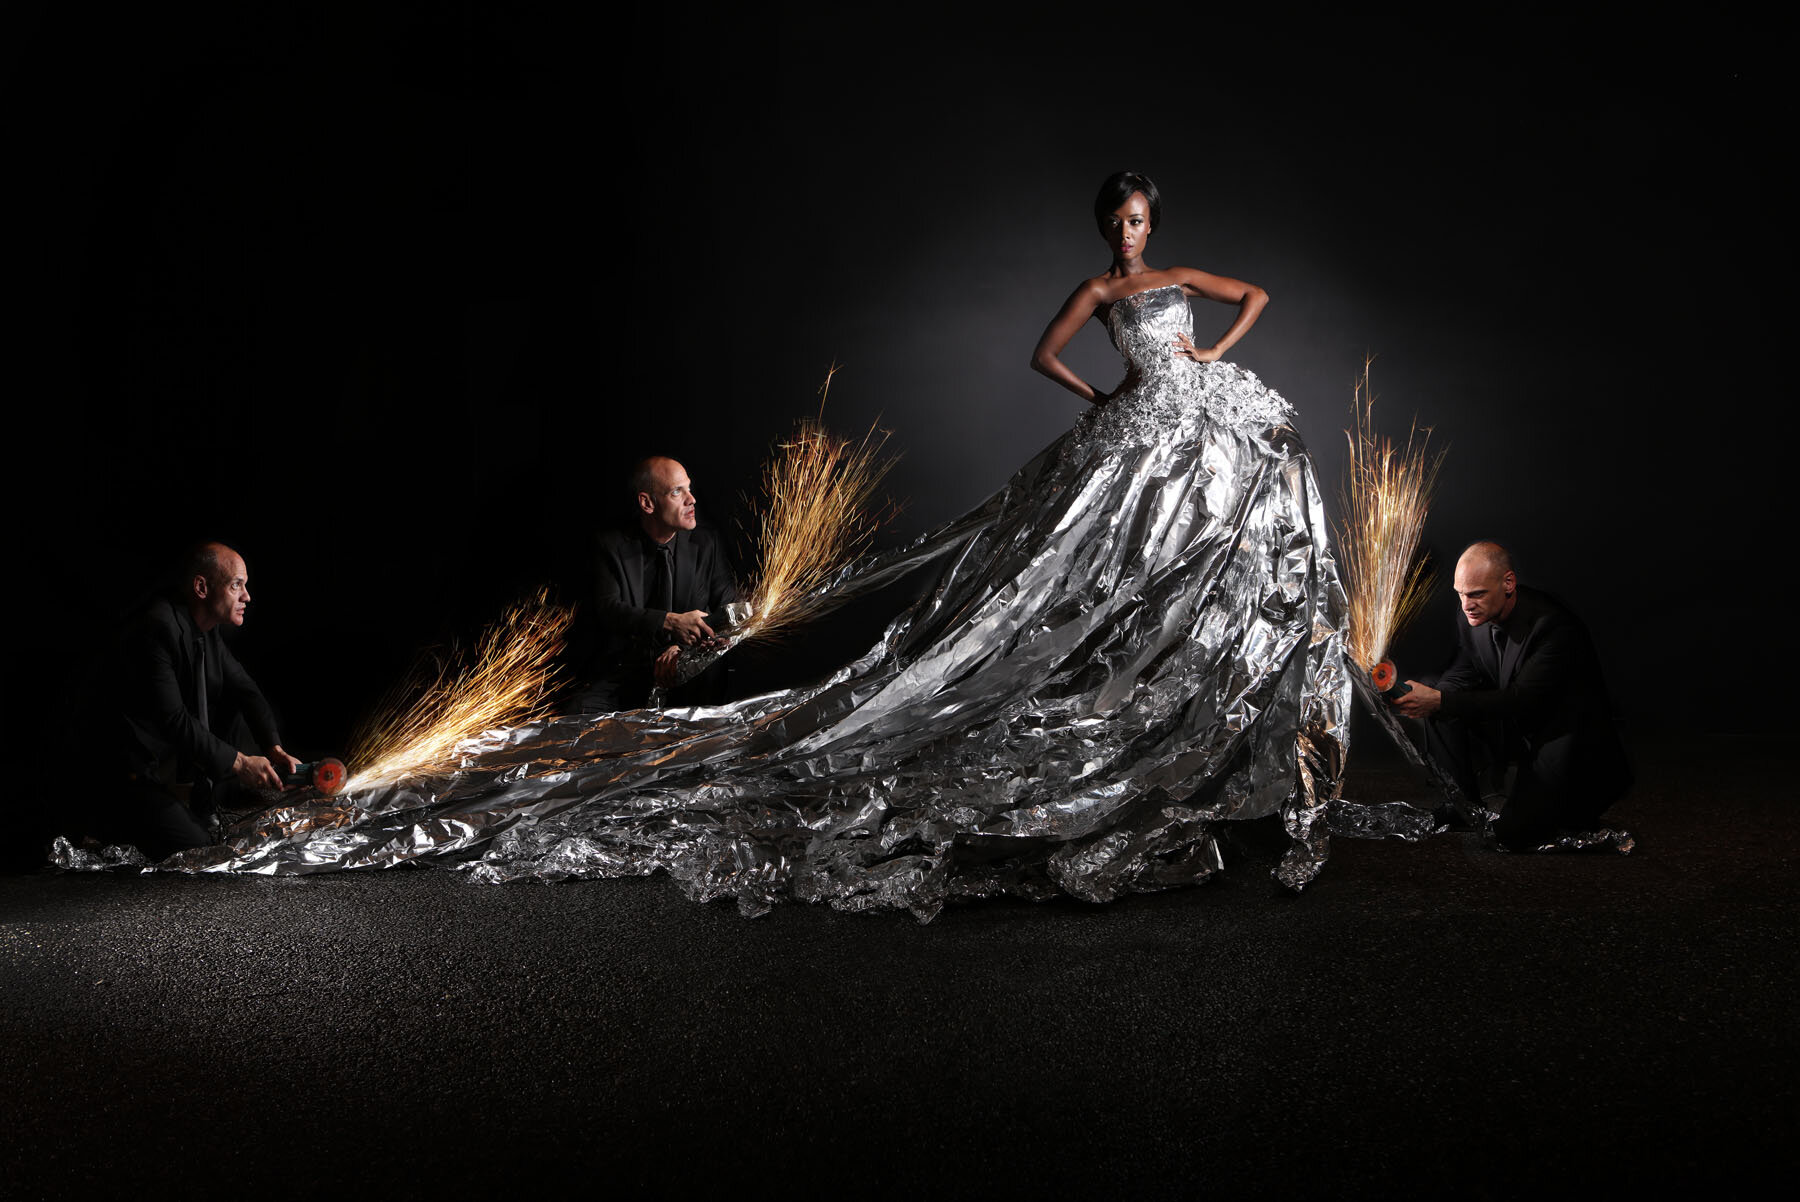 tin foil wedding dress flat.jpg